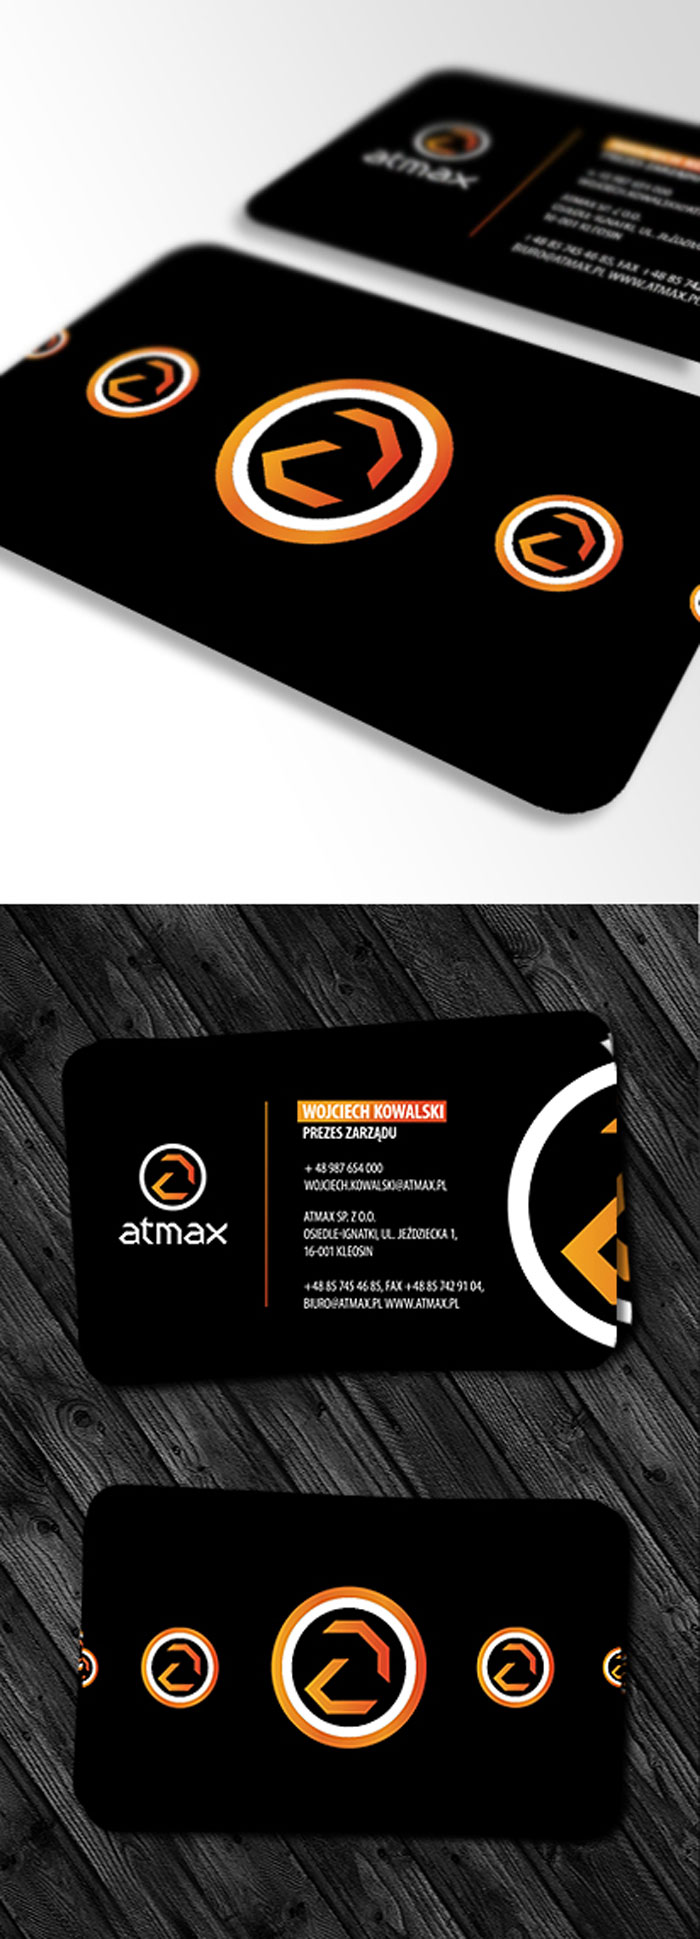 Atmax business card Black Business Card